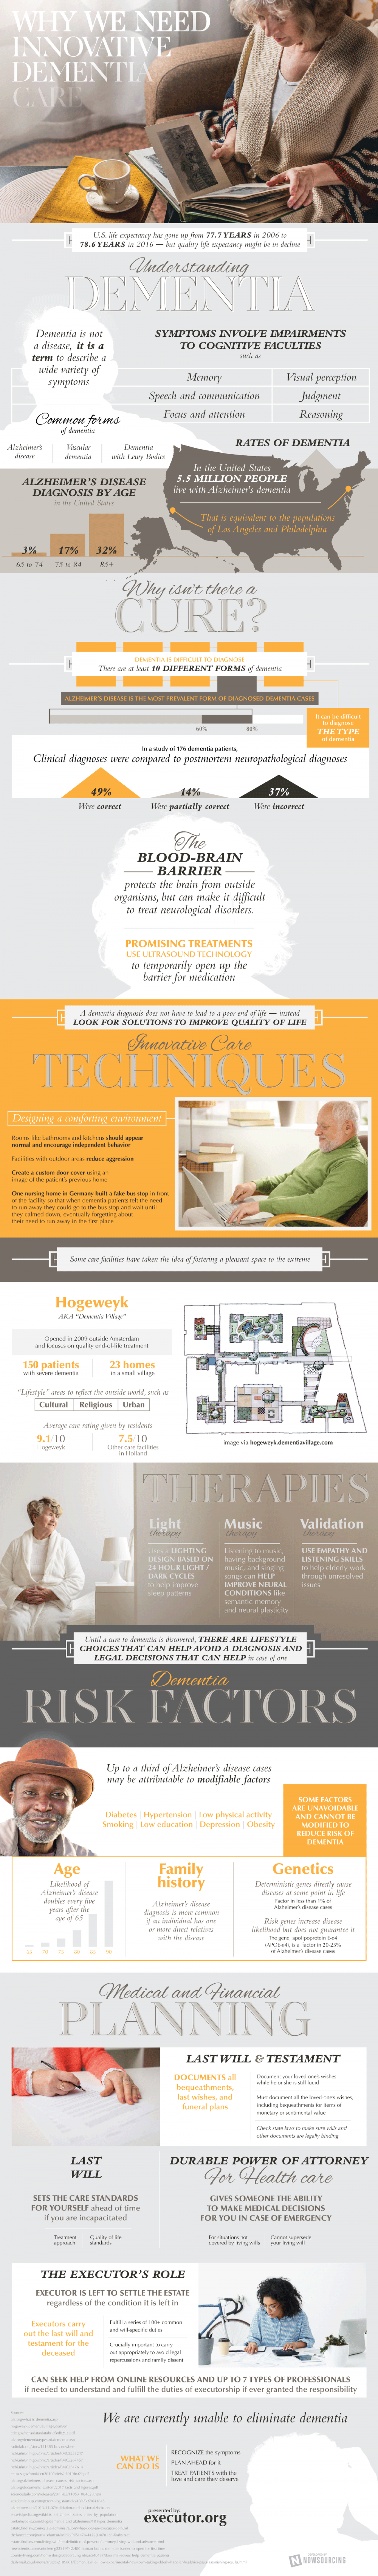 Better Dementia Care Starts With Planning Infographic